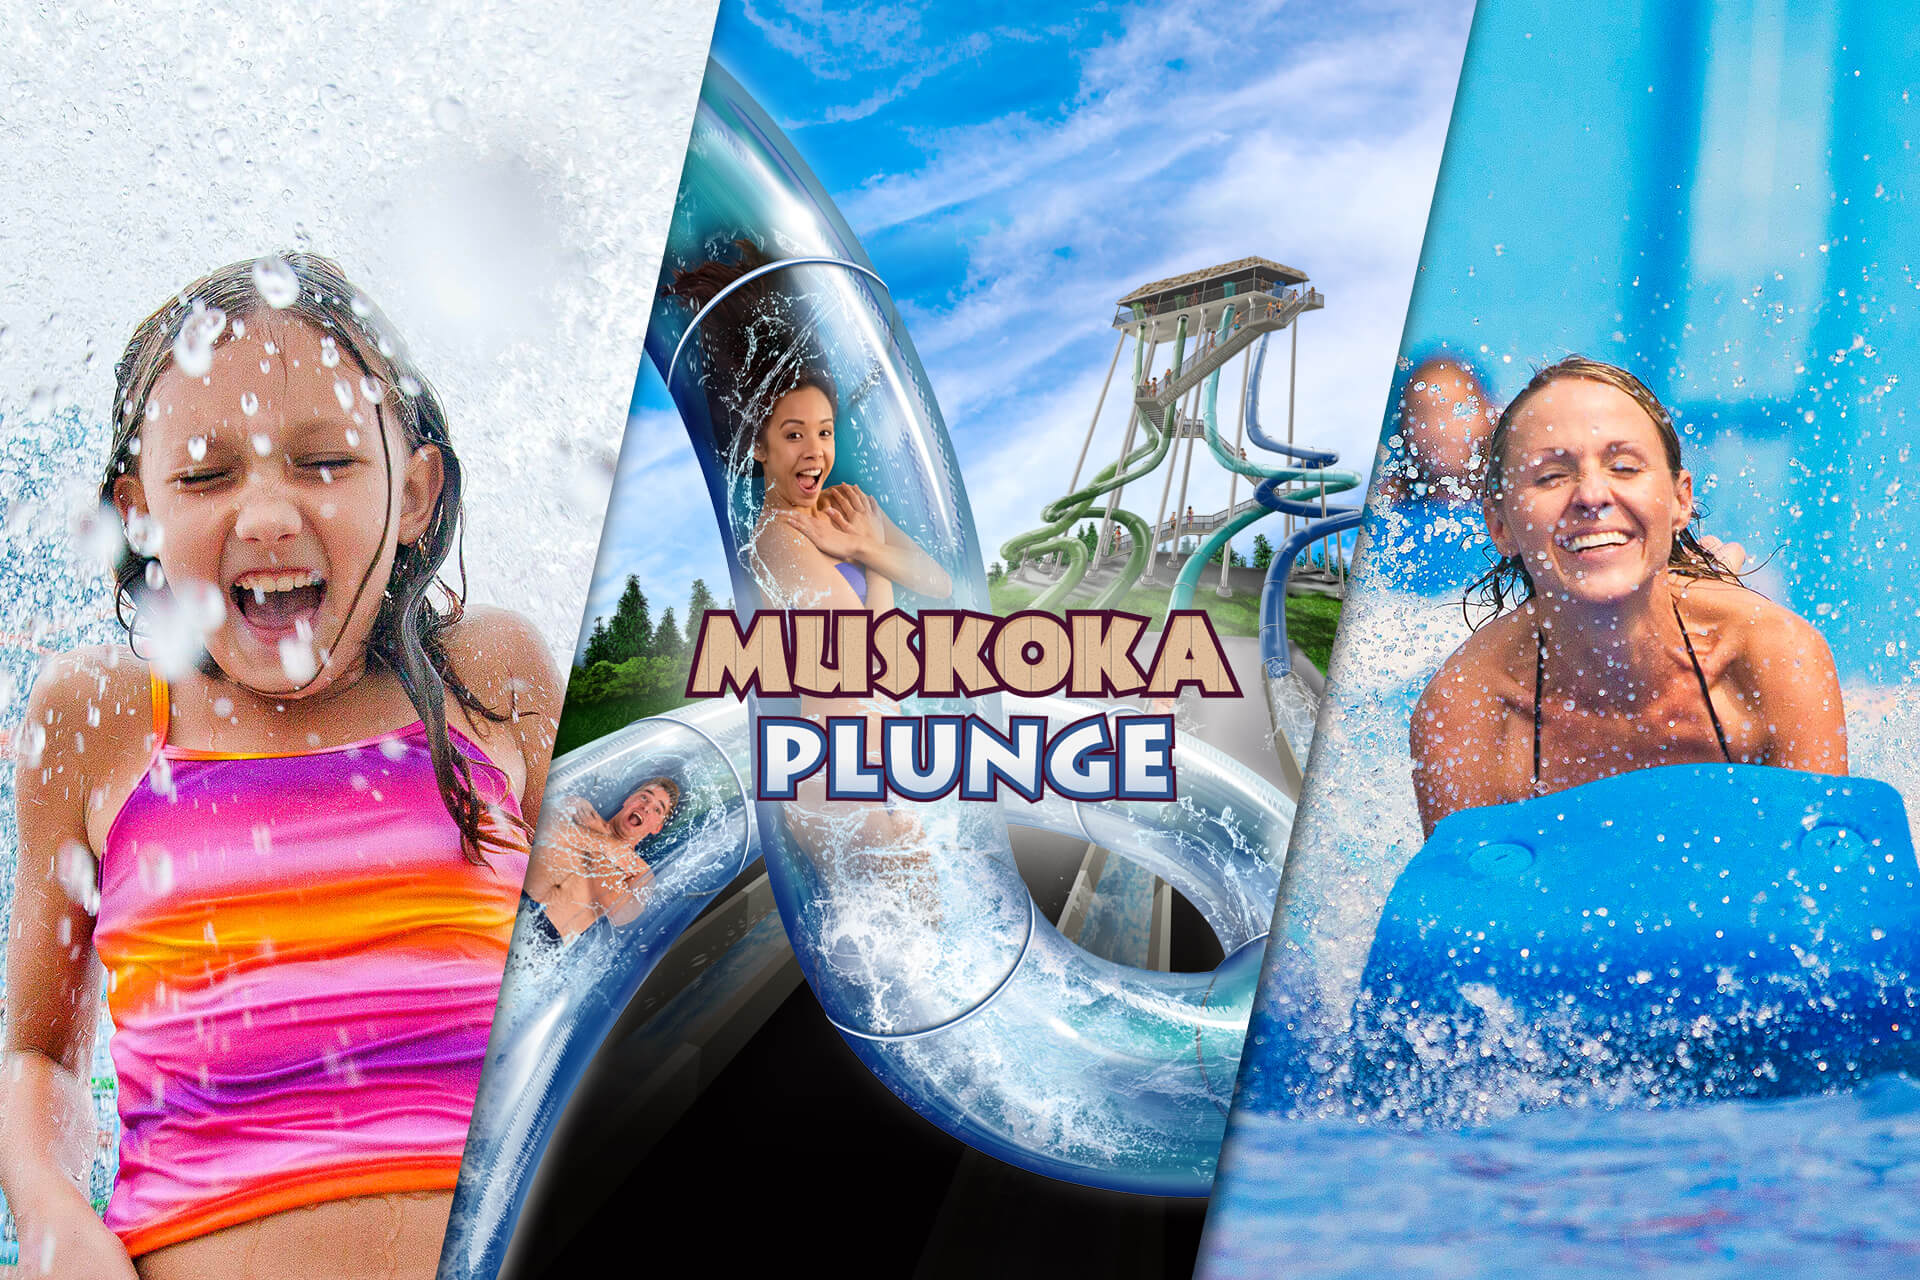 Muskoka Plunge at Canada's Wonderland's Splash Works